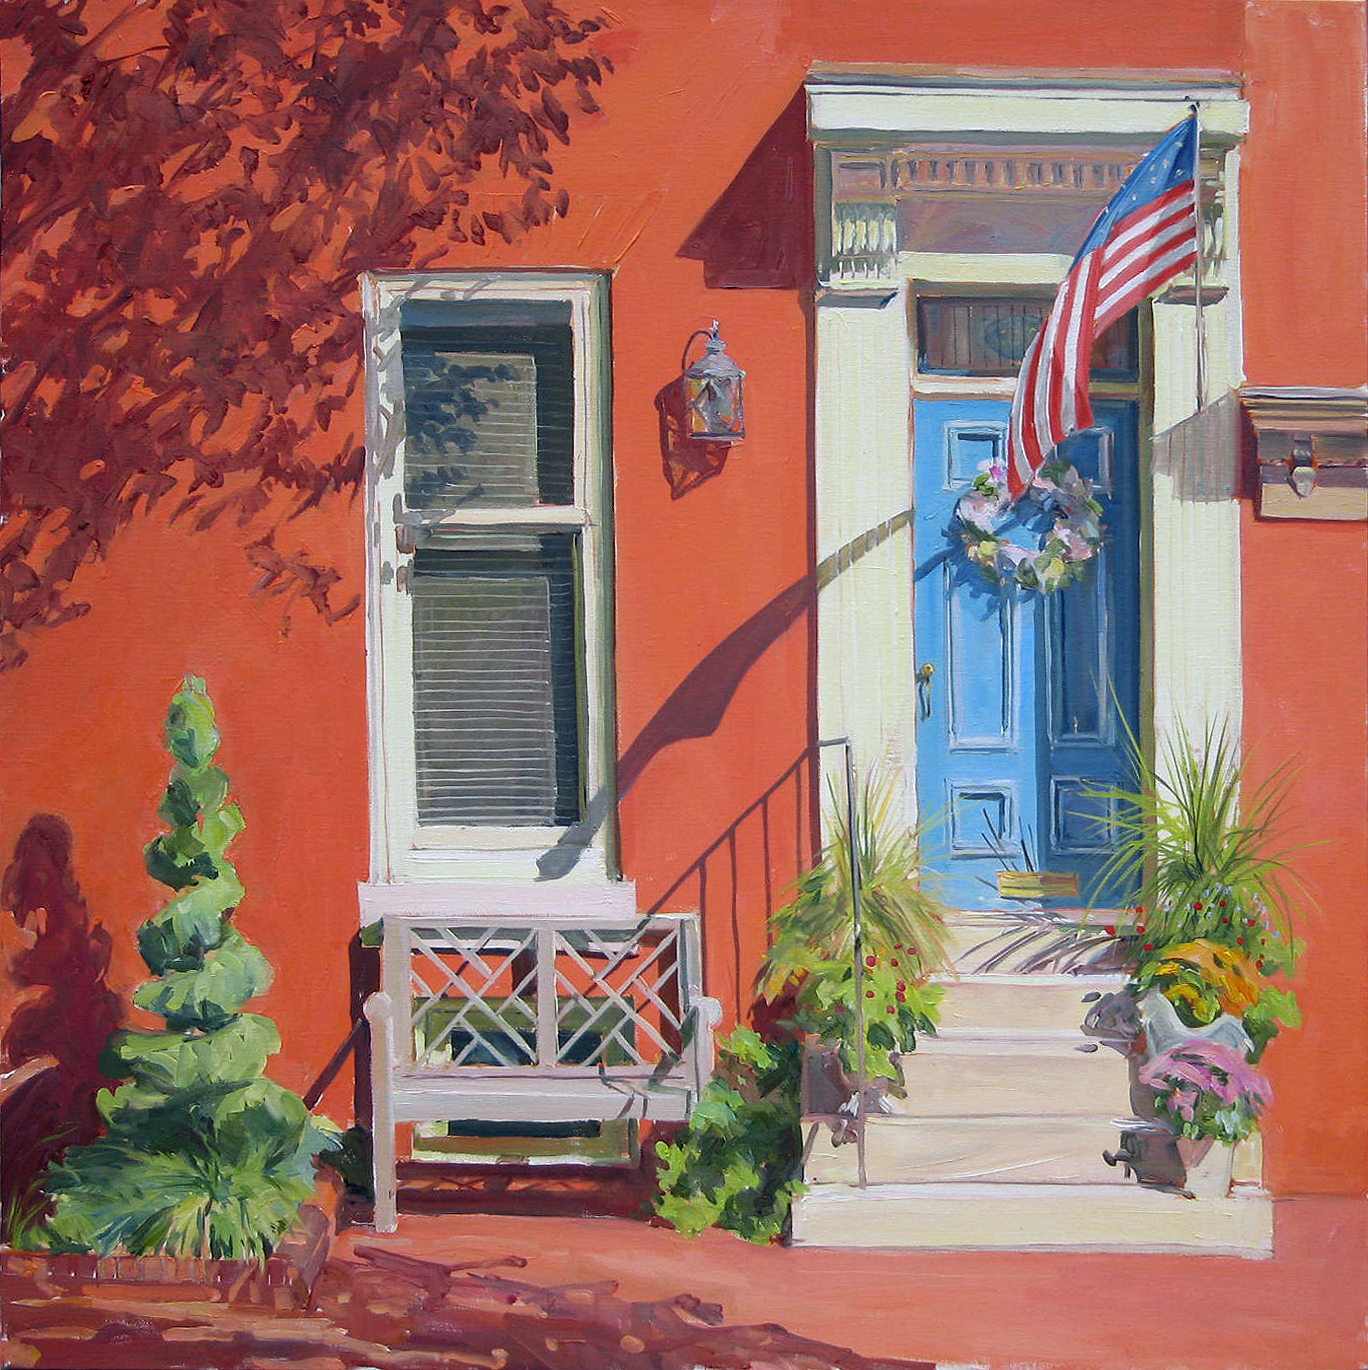 Plein Air painting. Oil Painting. Baltimore